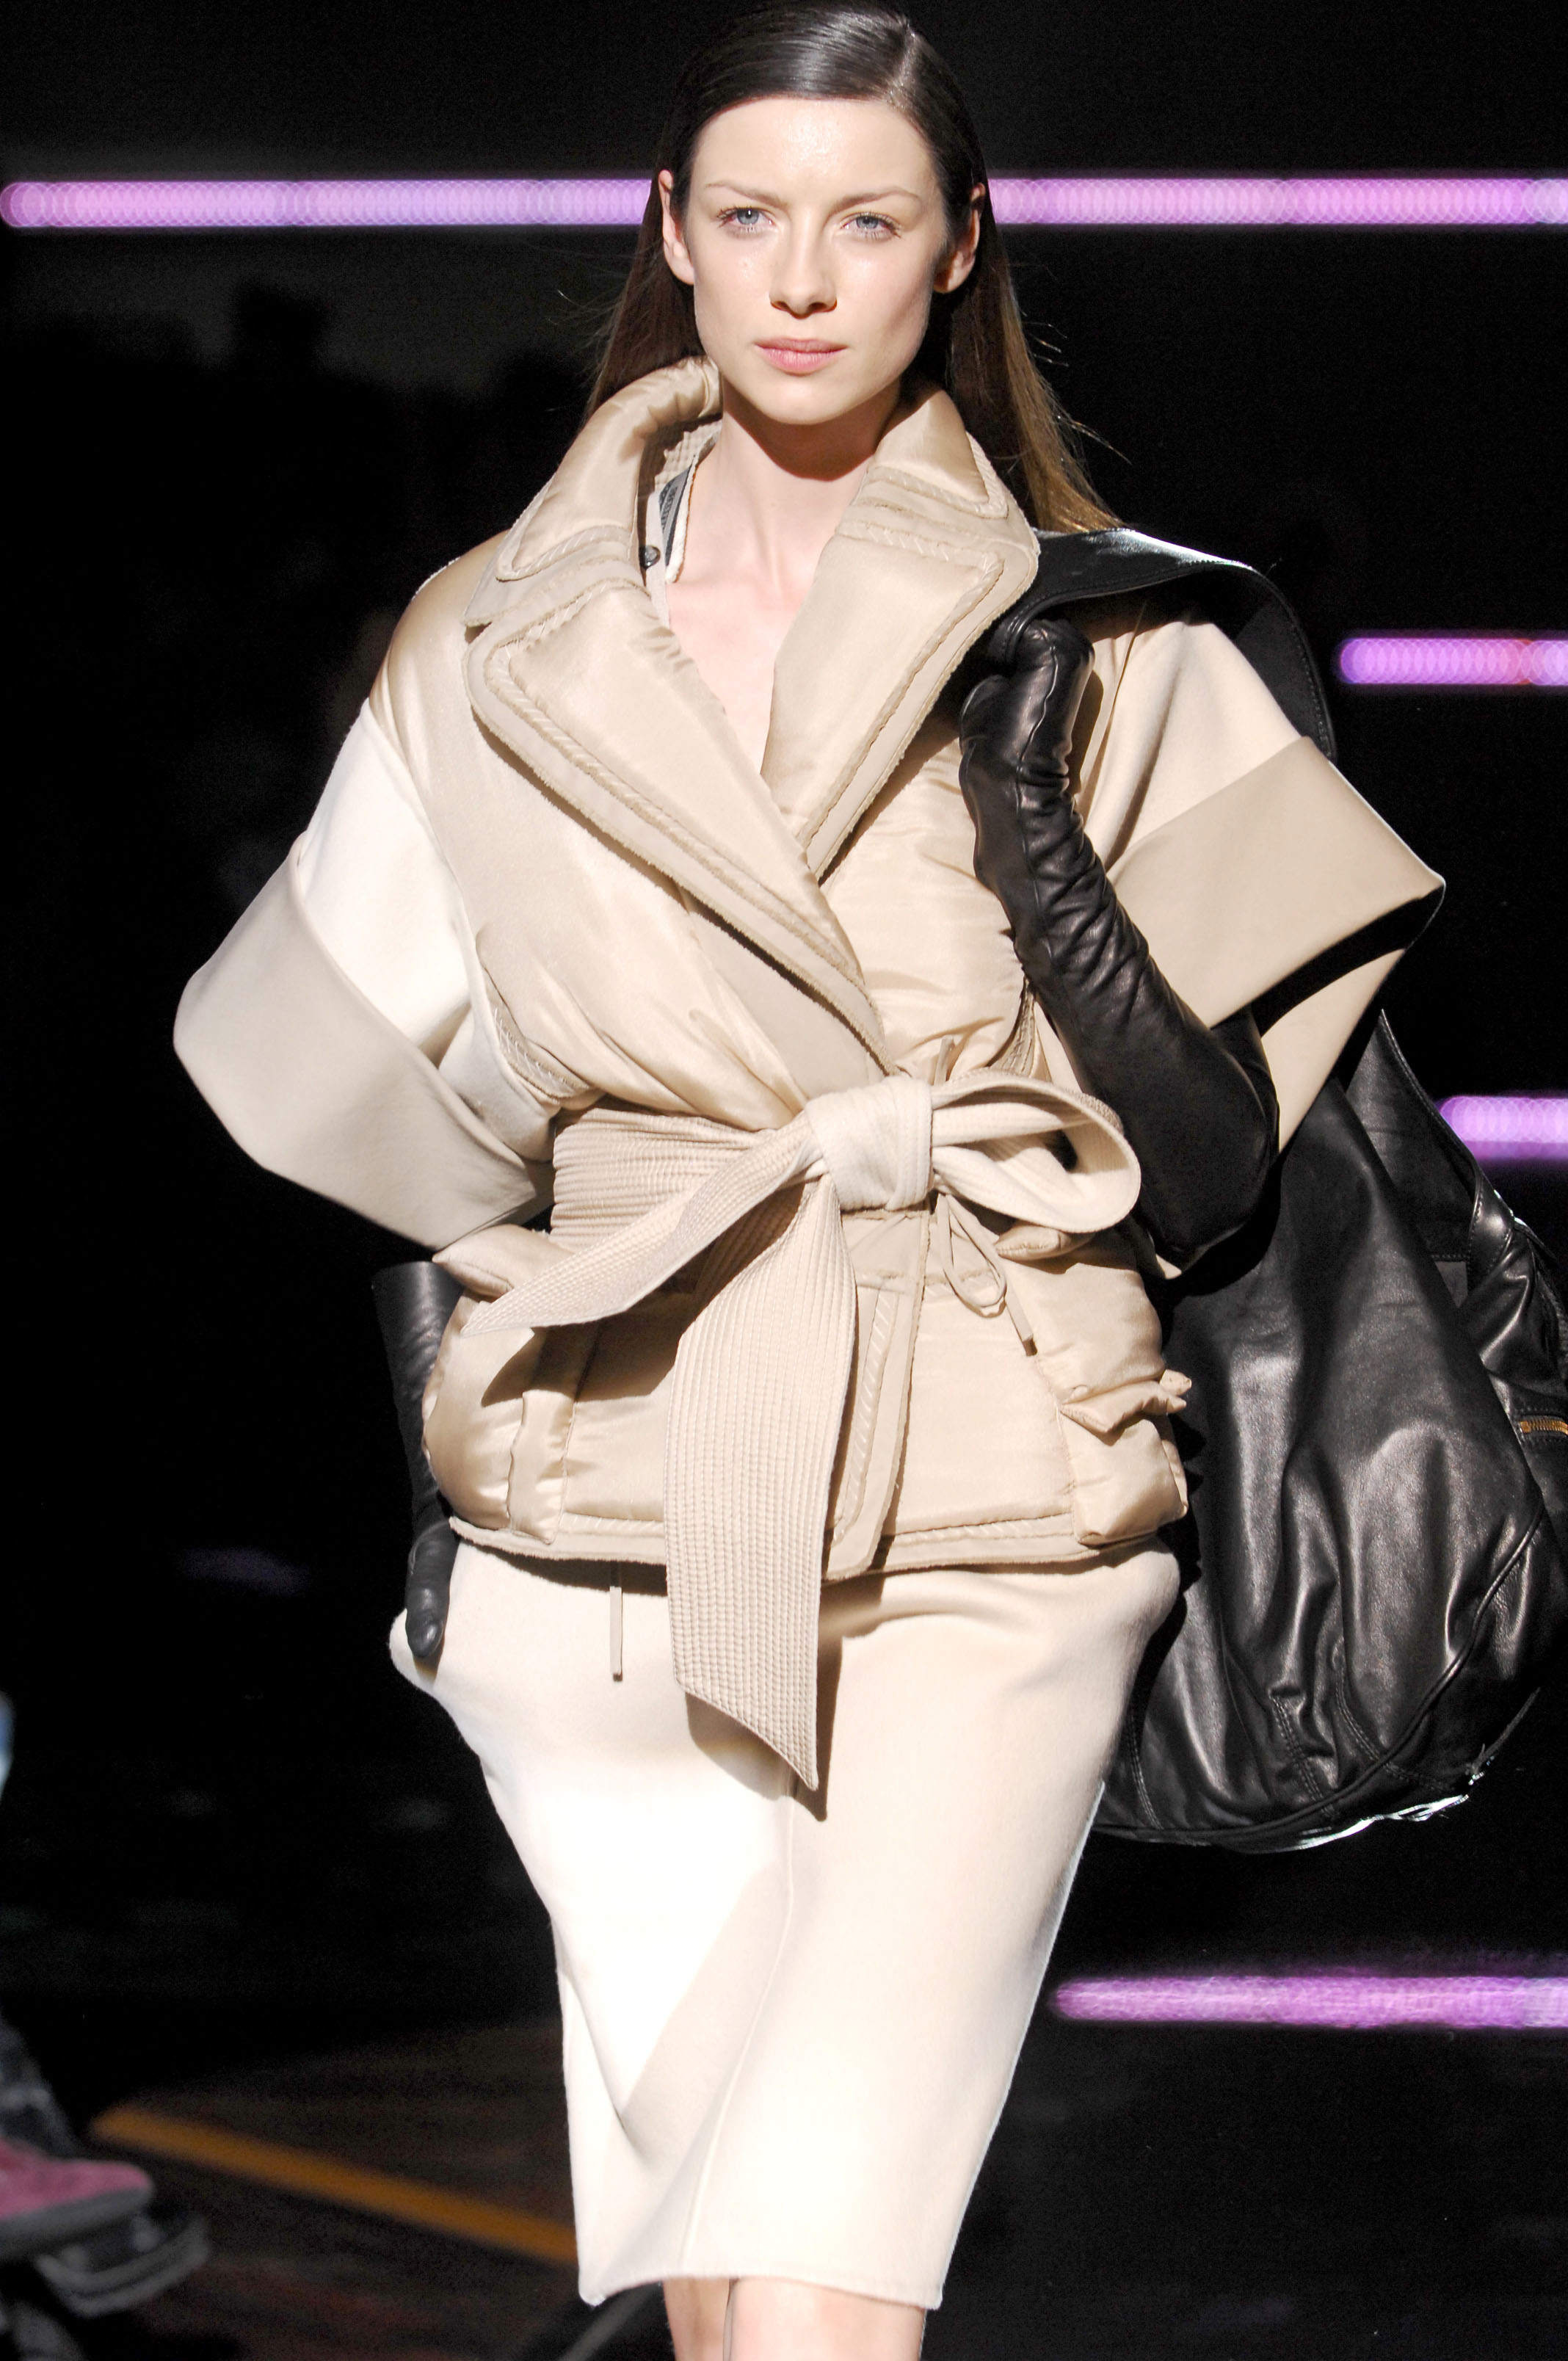 96585_celebrity_city_frr105_gianfranco_ferre_fall_winter_2007_2008_122_765lo.jpg